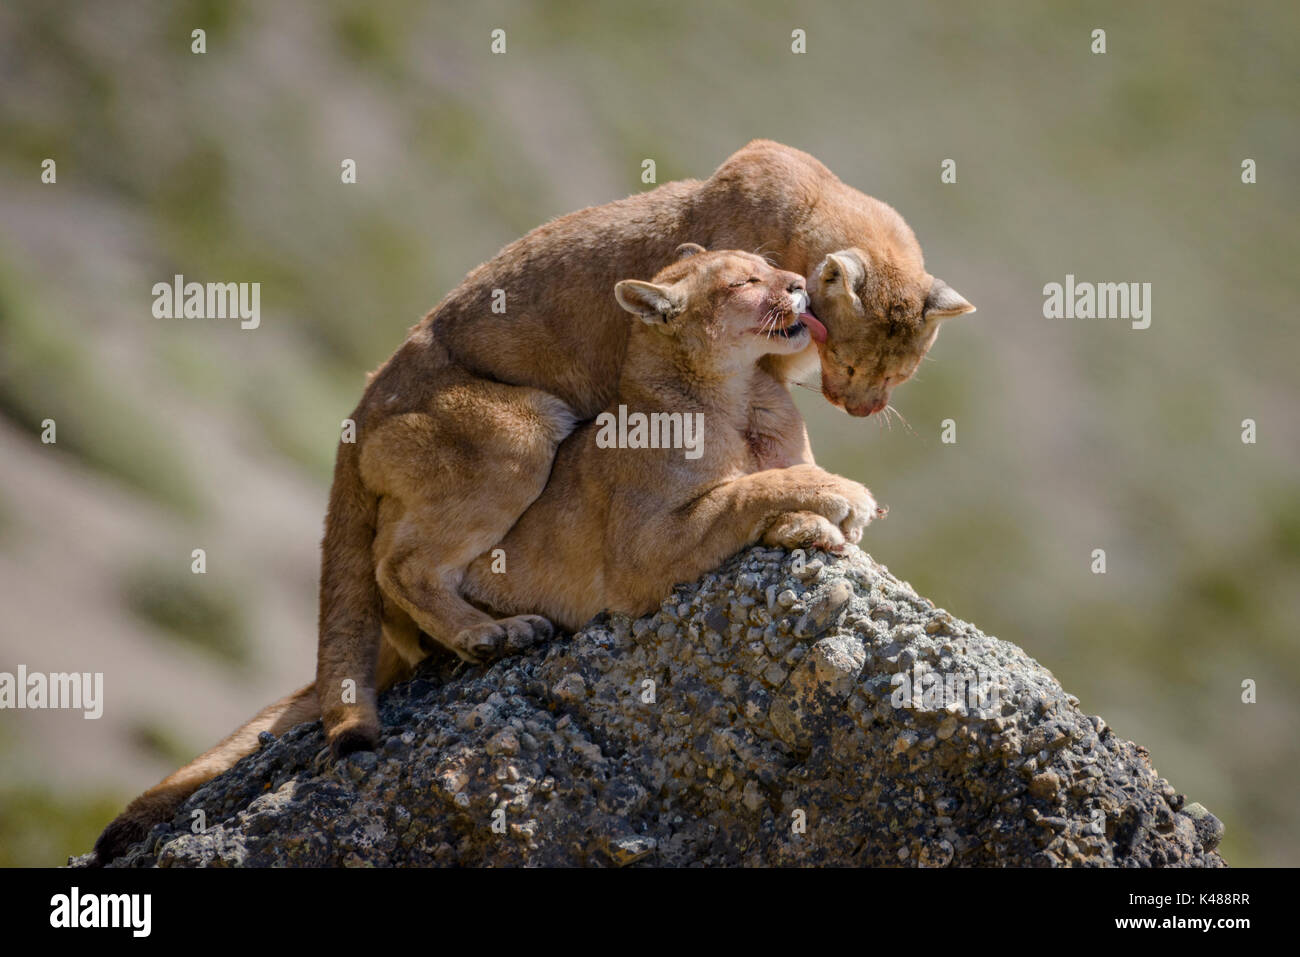 Wild Pumas (Puma concolor) from Torres del Paine, Chile - Stock Image